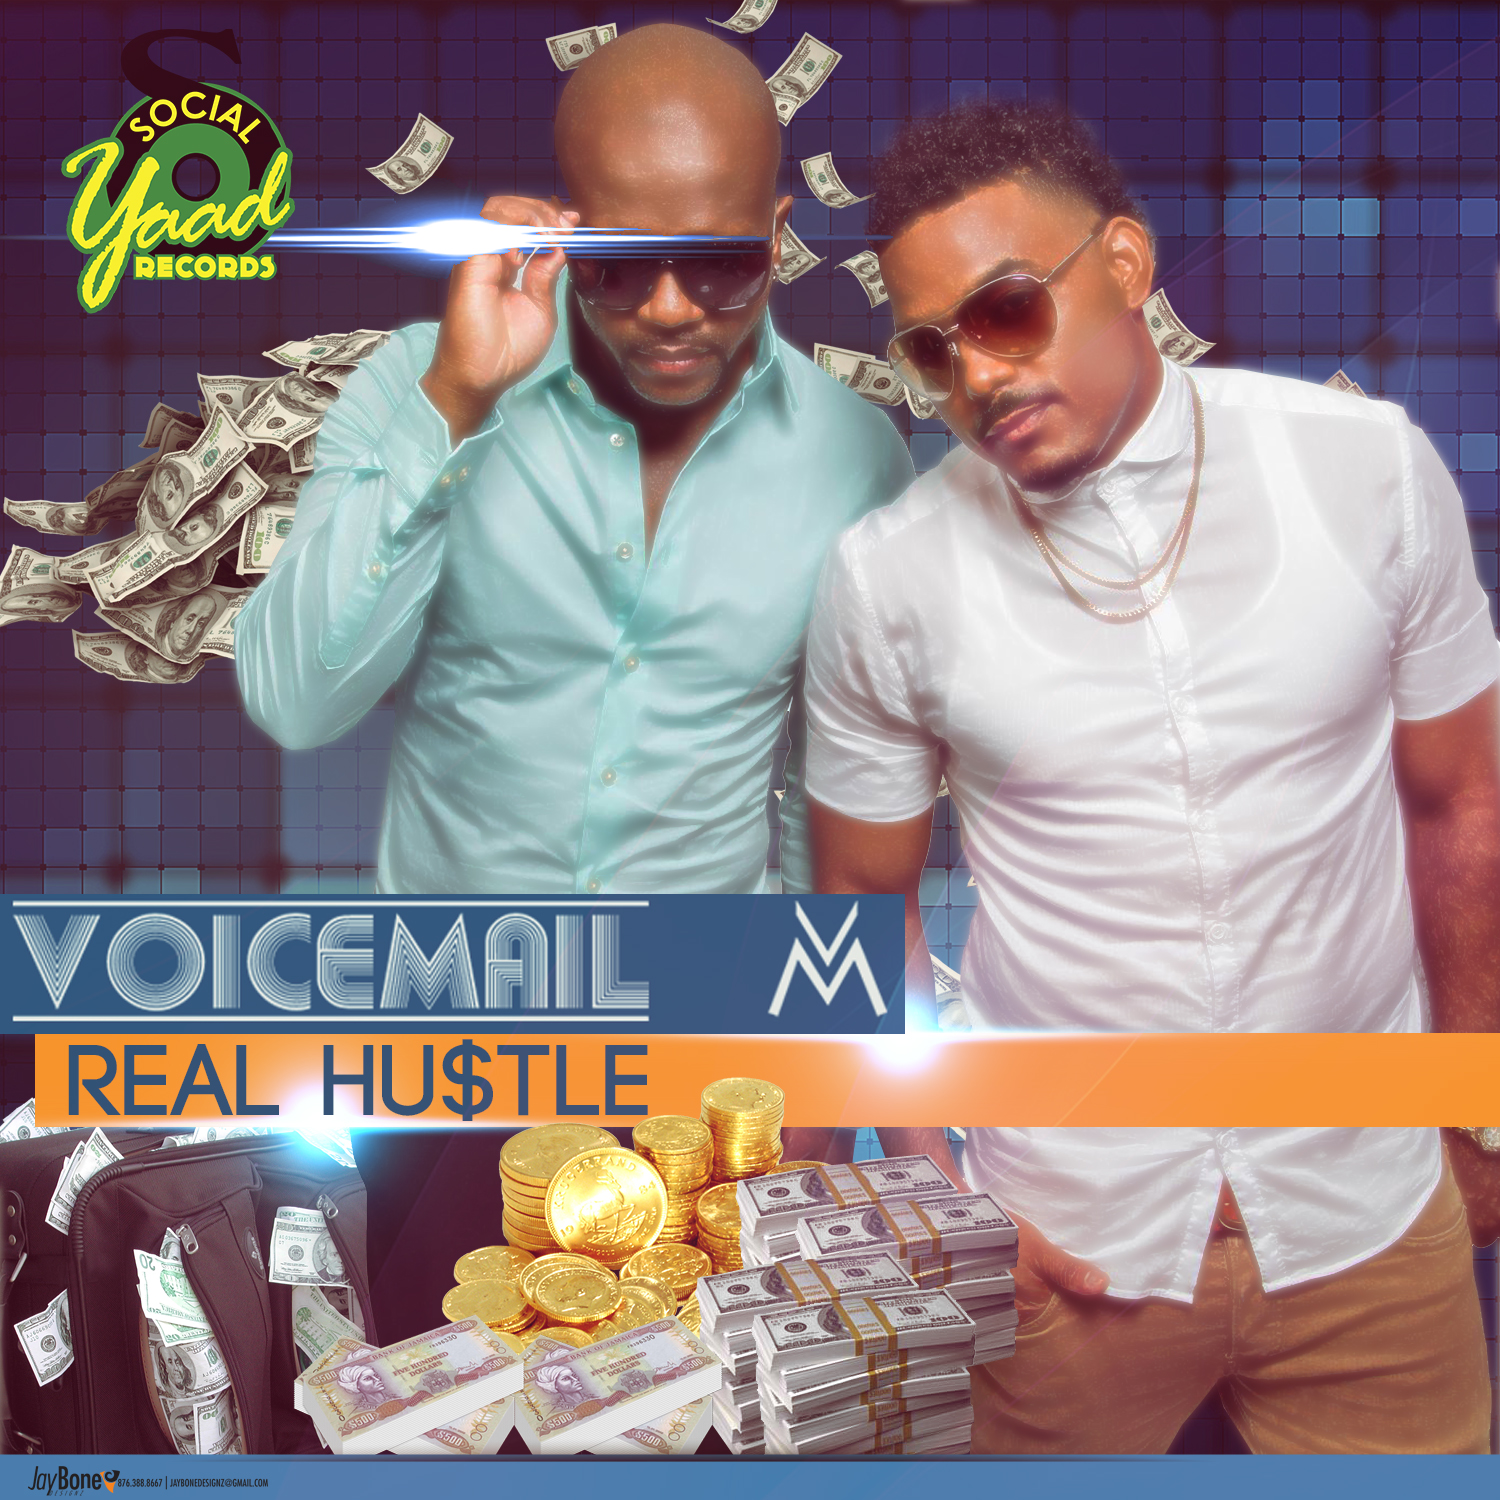 voicemail-real-hustle-cover